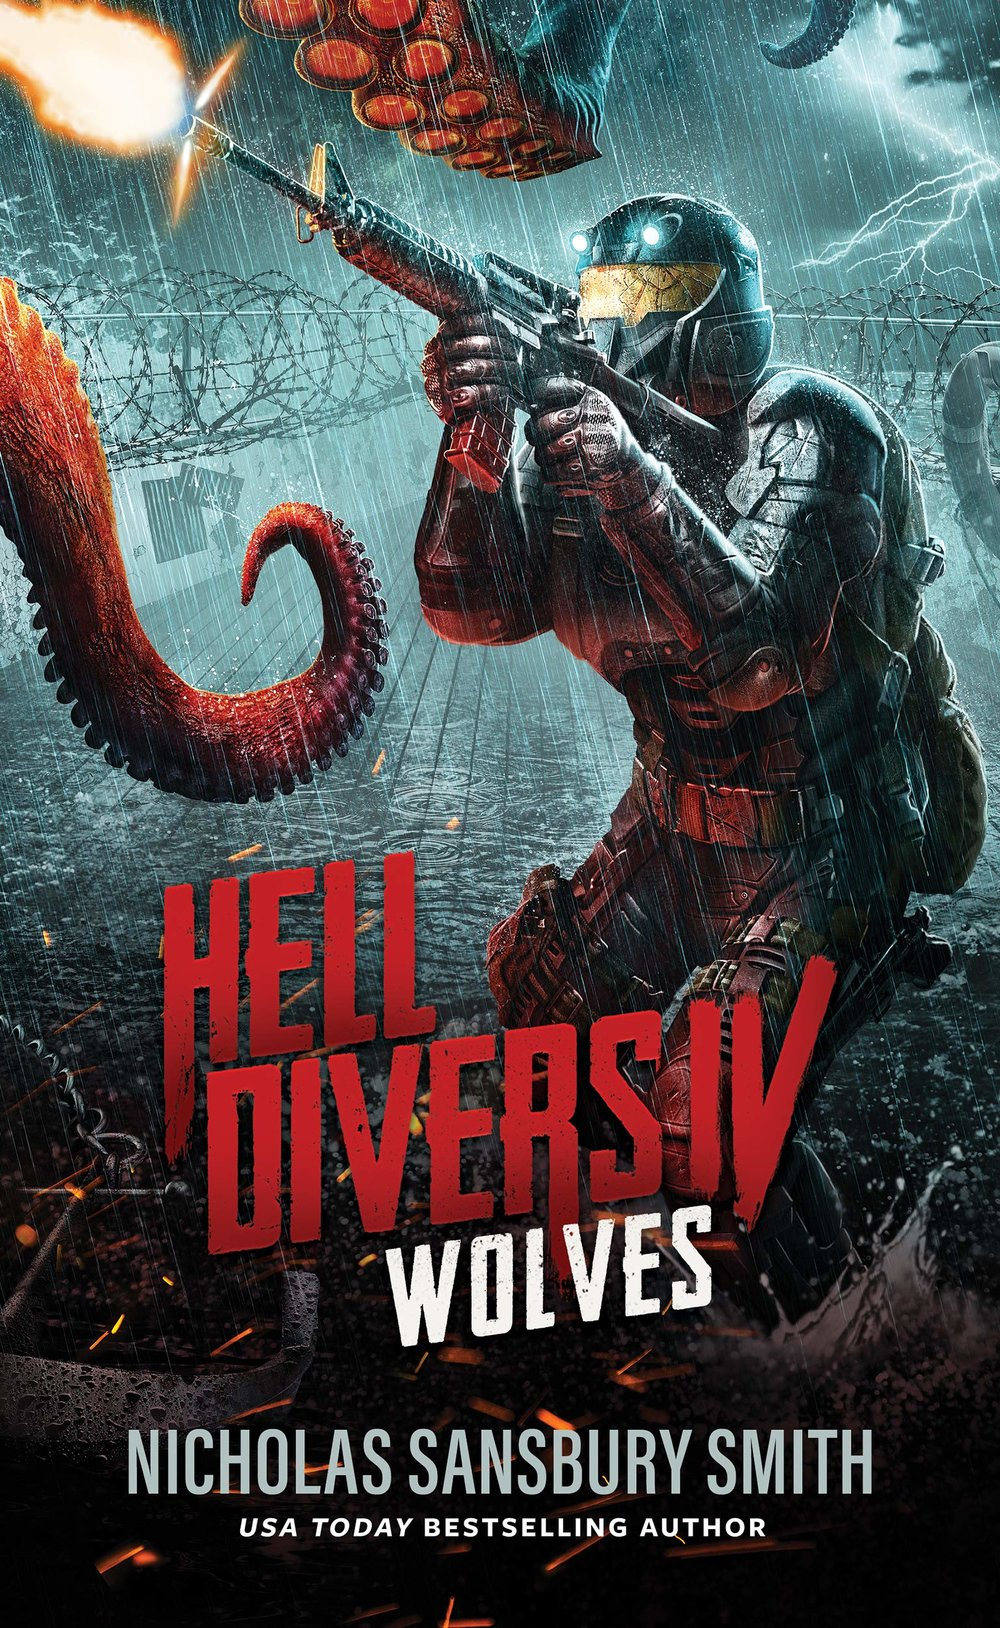 Hell-Divers-IV-Wolves-Nicholas-Sansbury-Smith.jpg